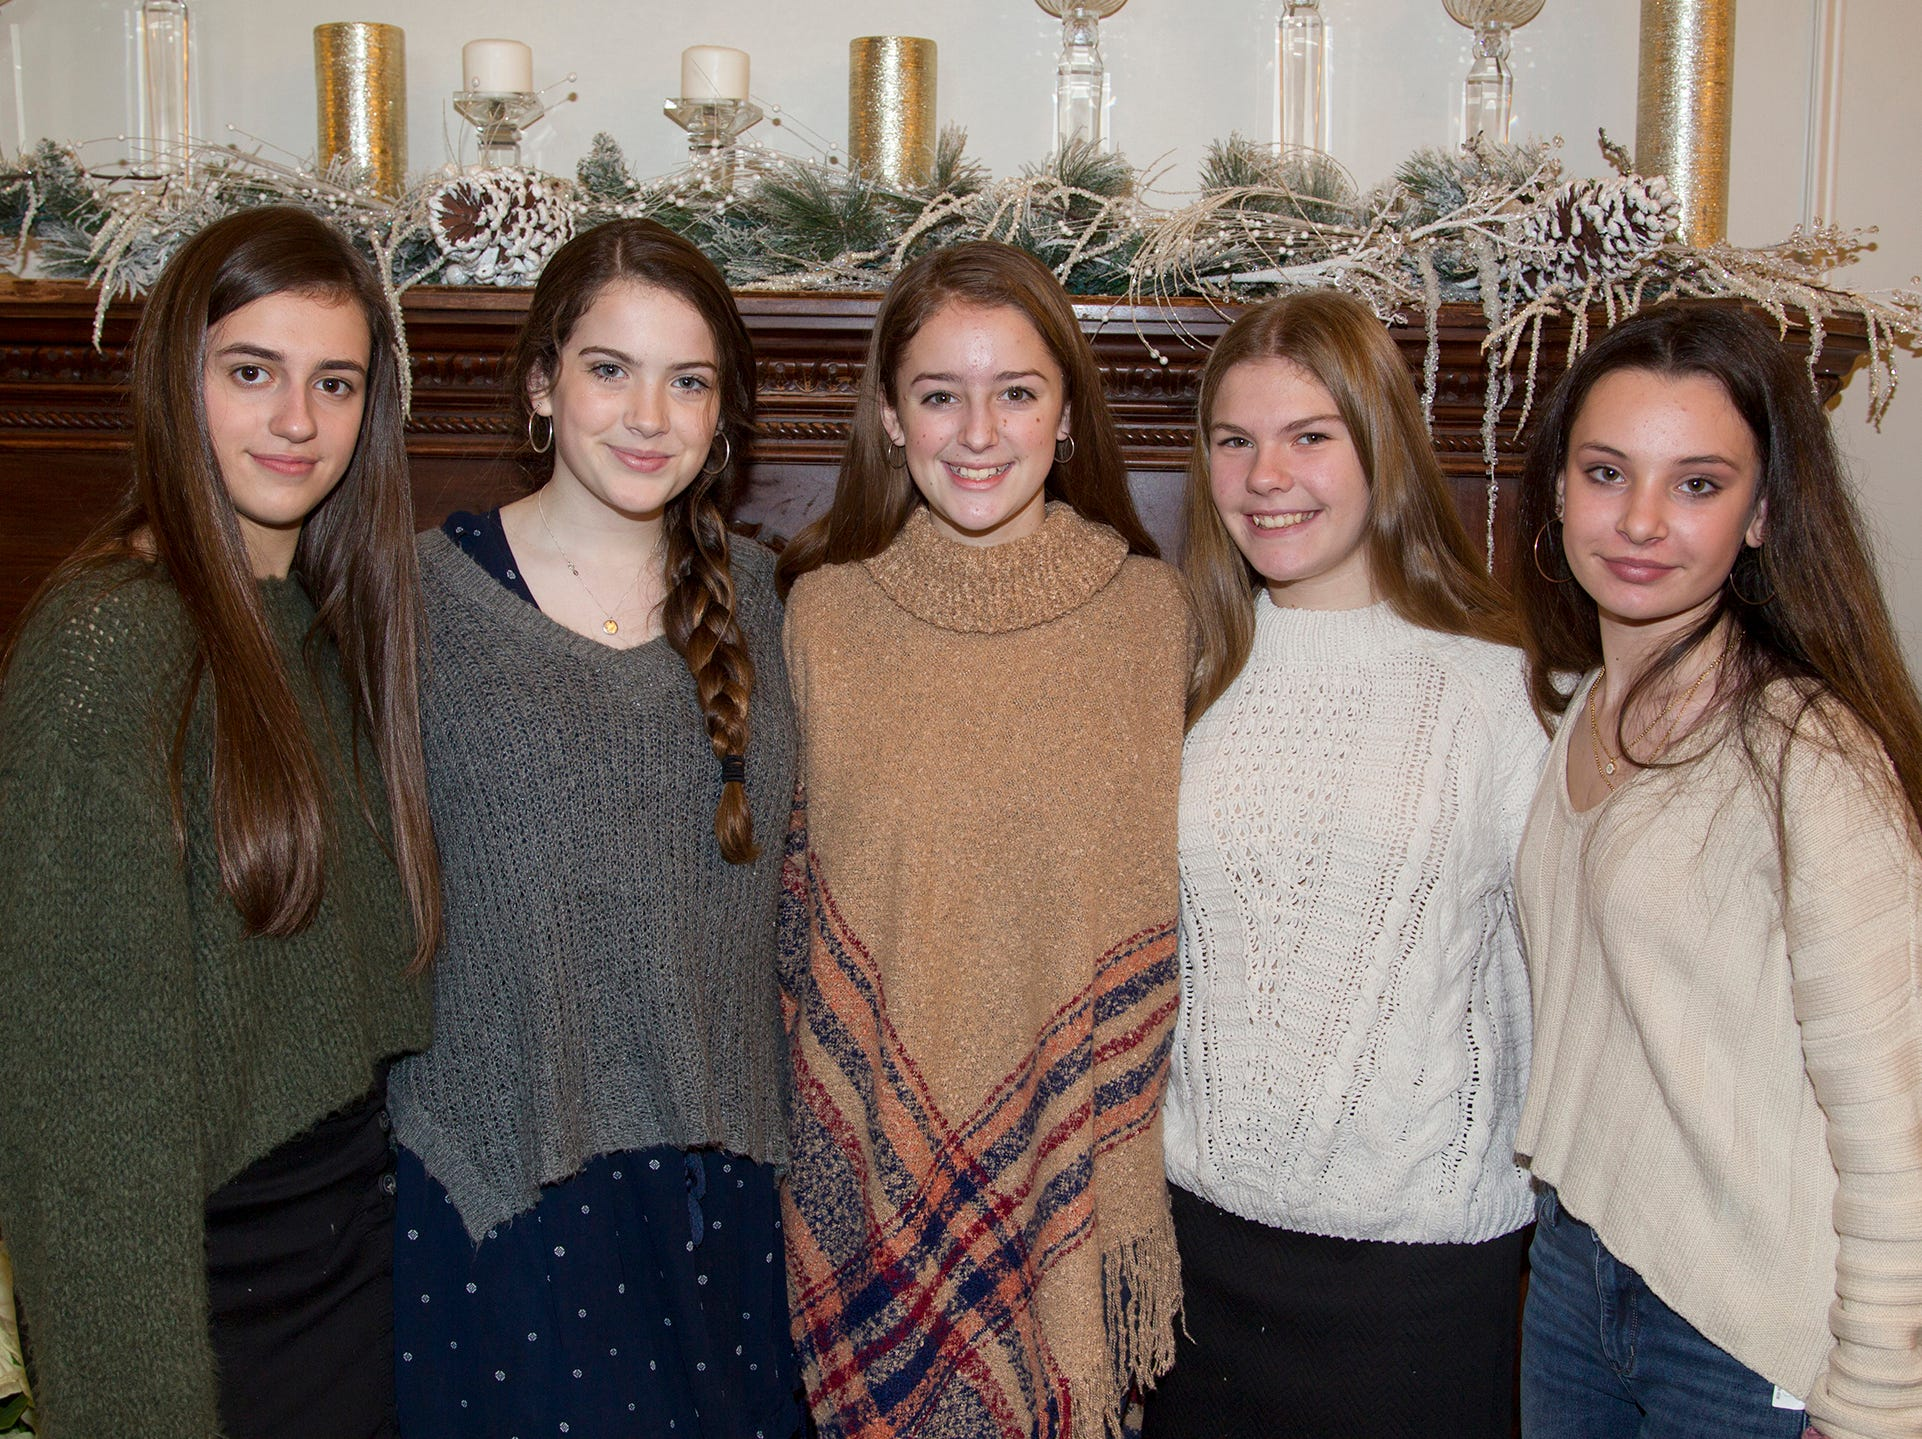 Danielle, Krista, Jenn, Cathy, Jenna. Immaculate Heart Academy held its annual Fashion Show fundraiser at Florentine Gardens in River Vale. 12/02/2018